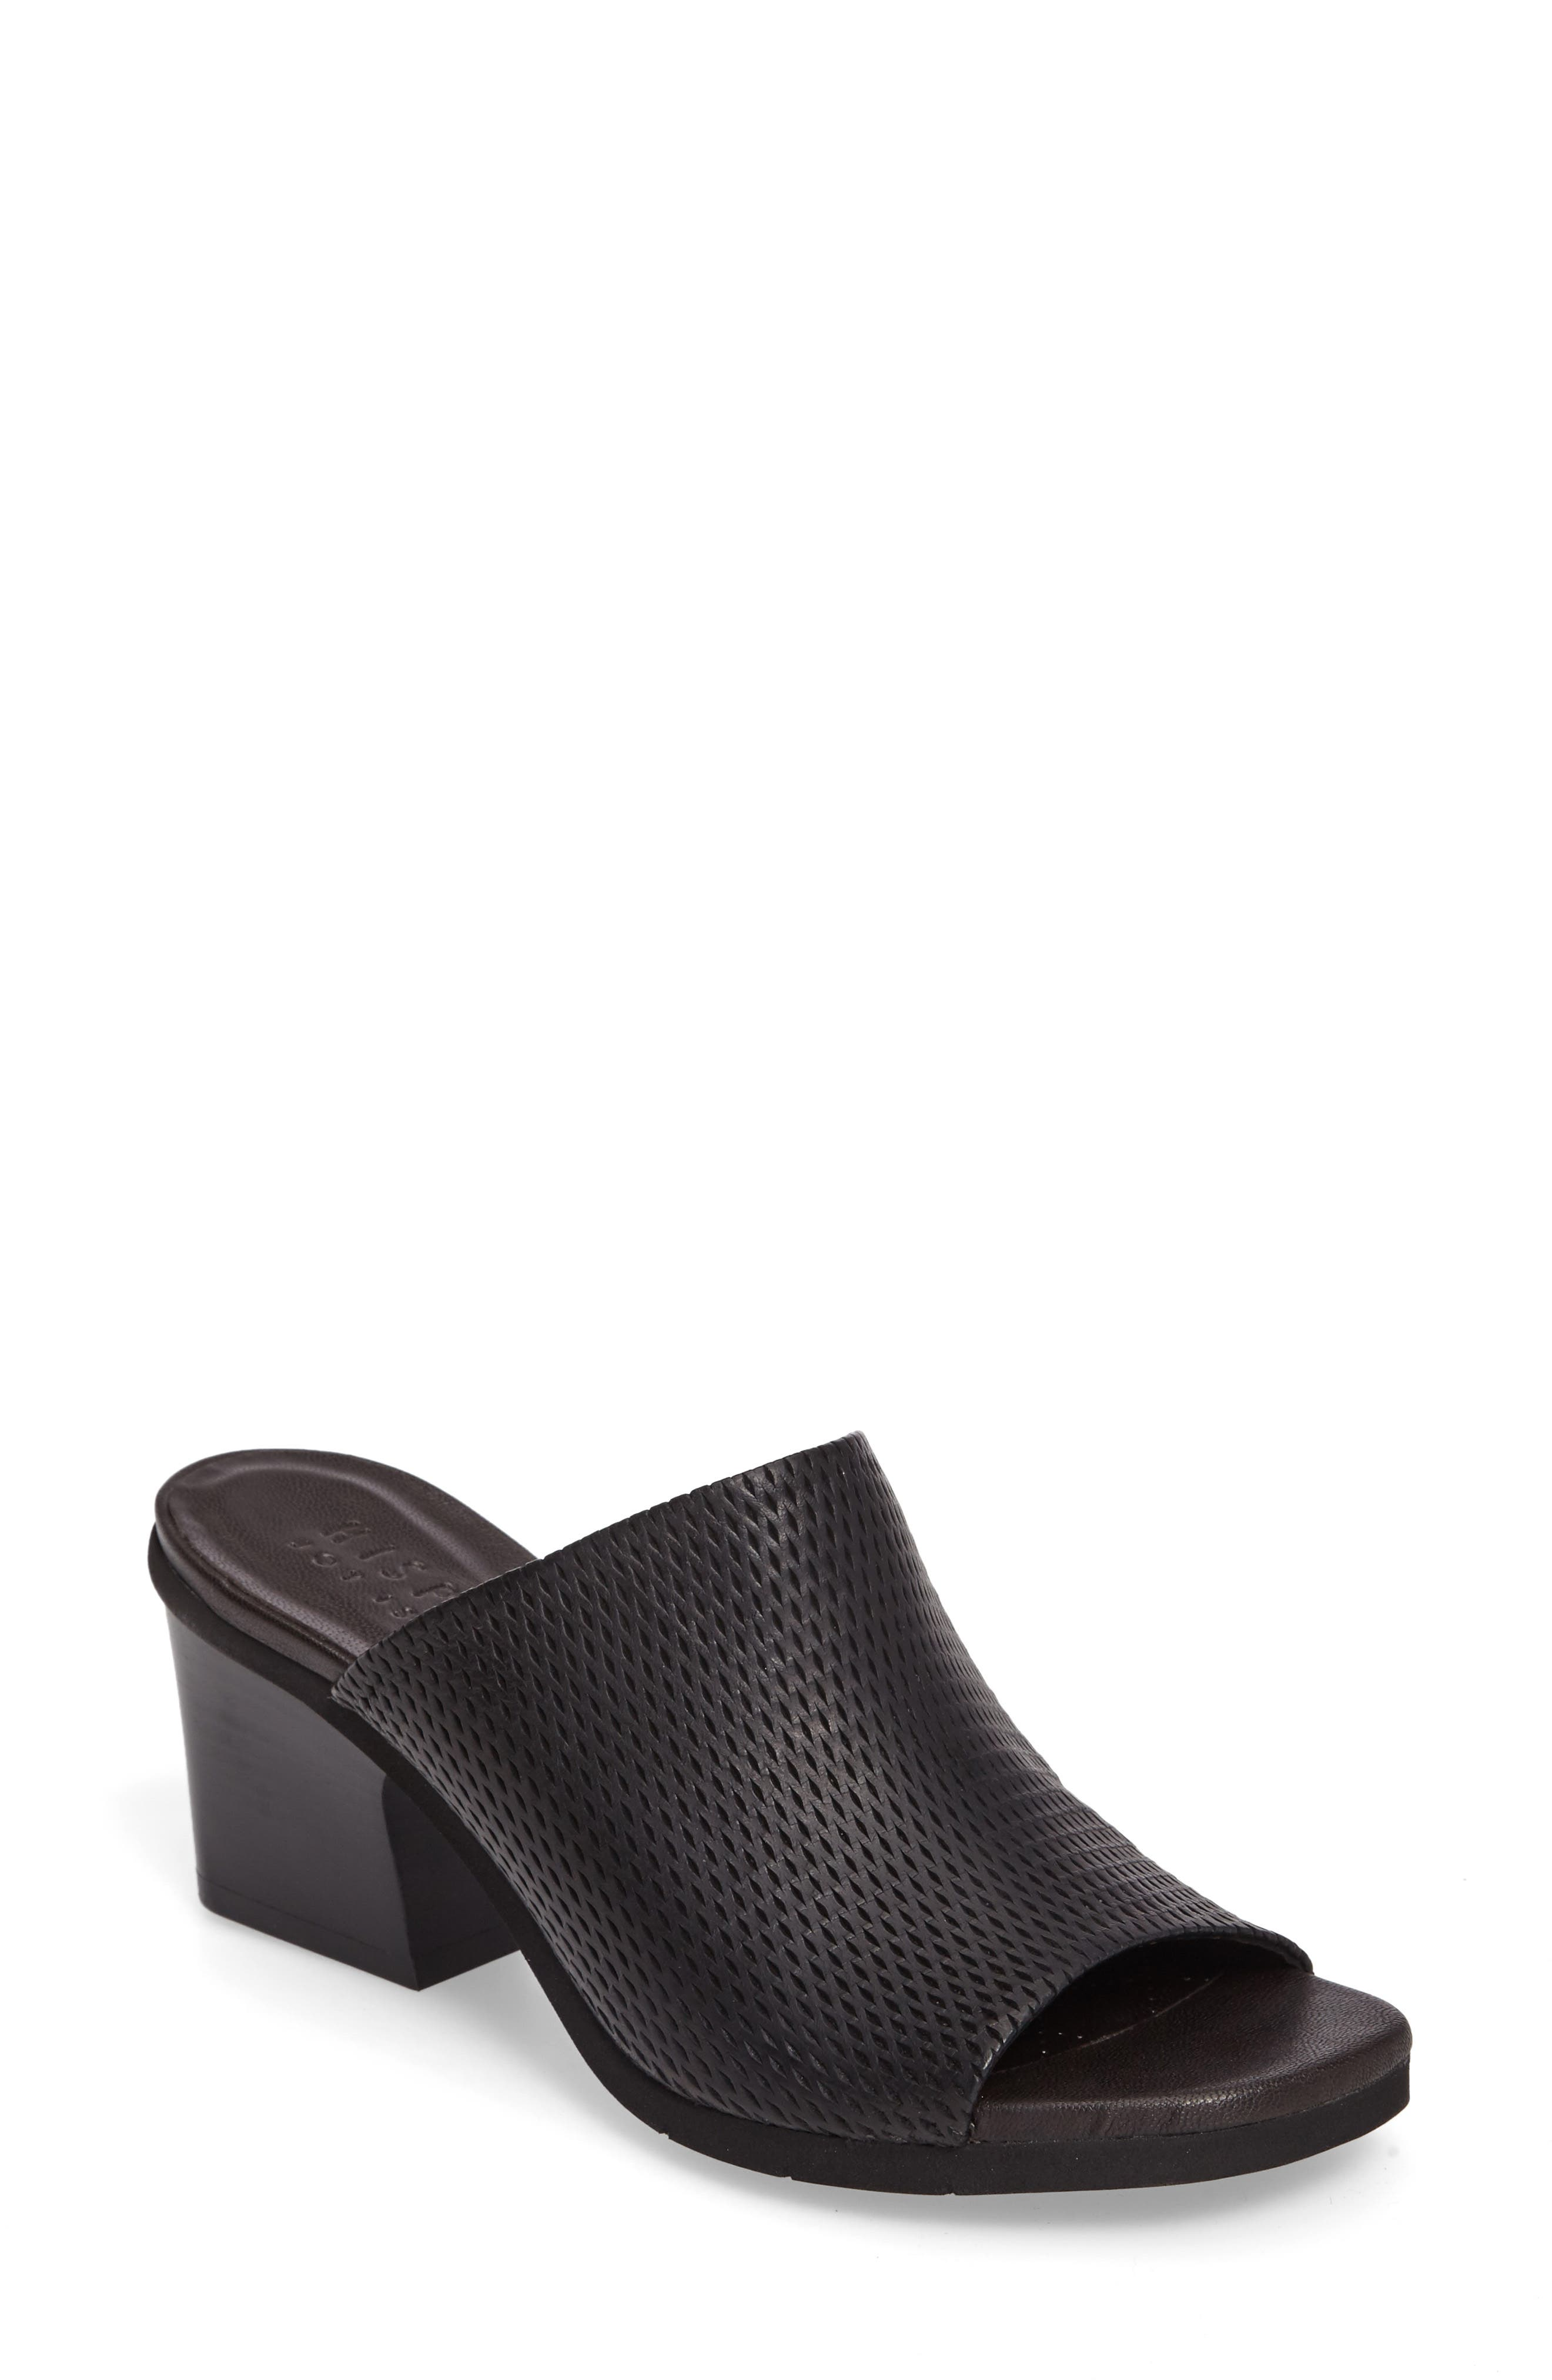 Udora Perforated Mule,                         Main,                         color, 001